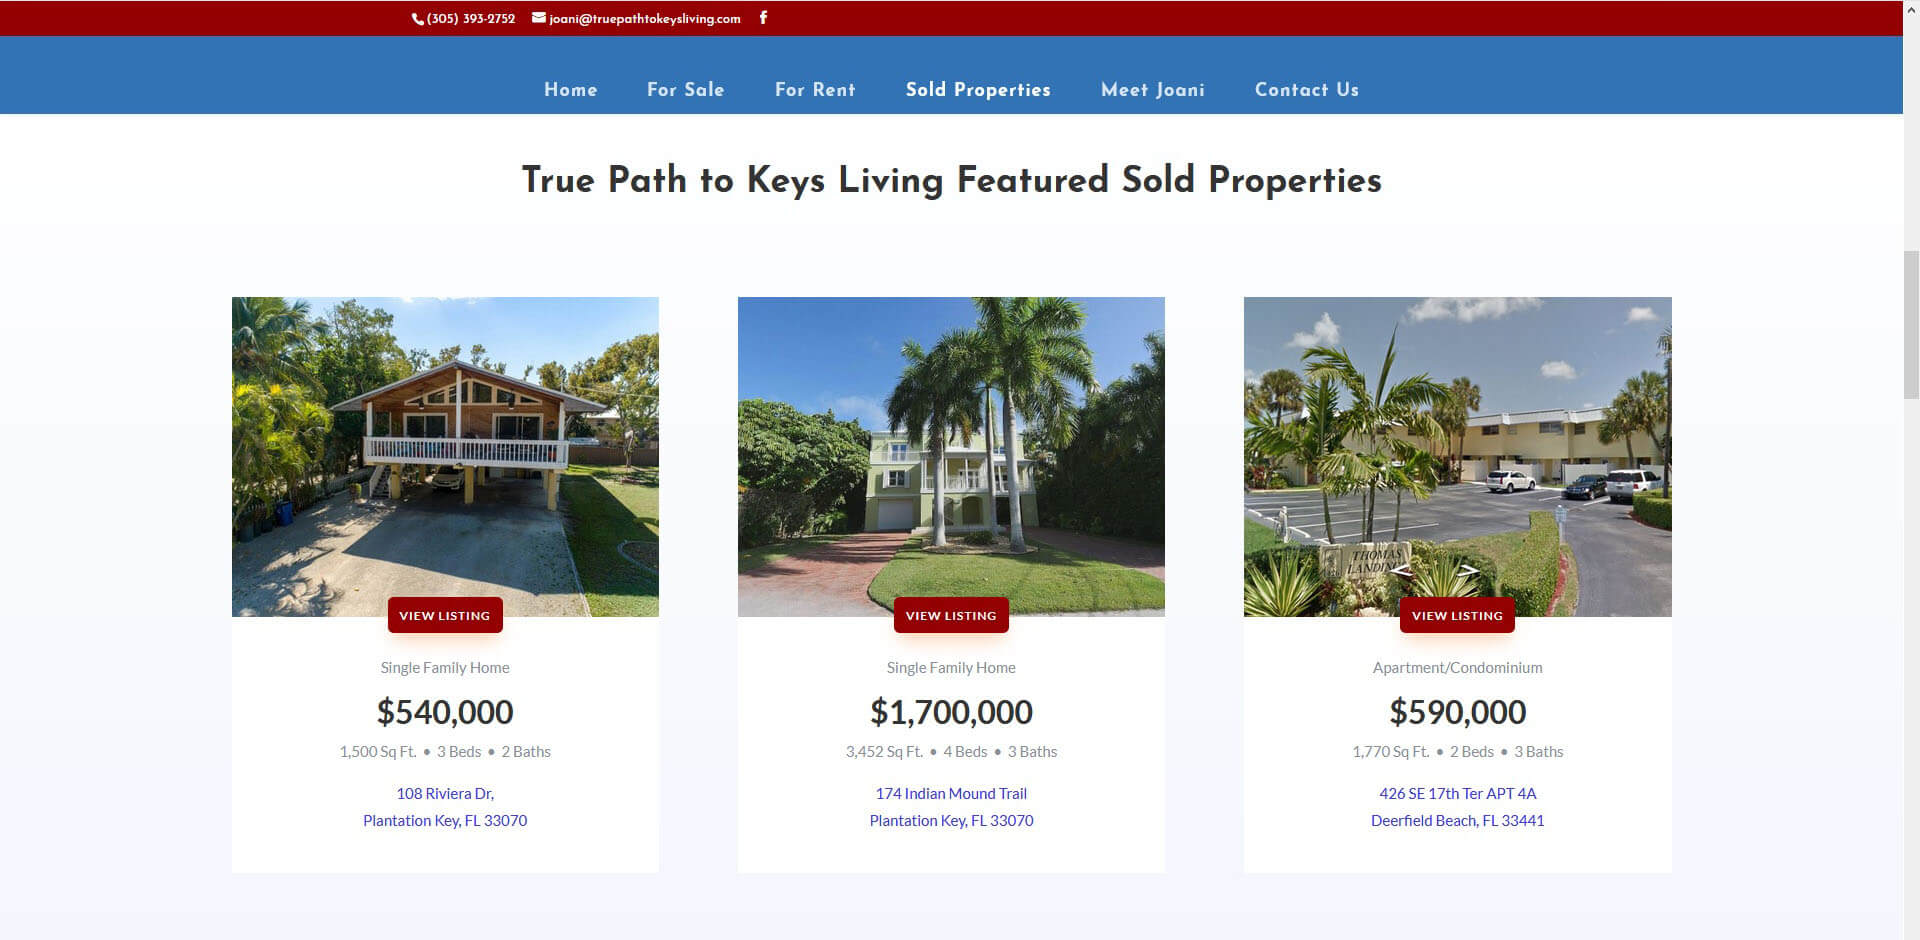 An image of the Sold Propertyies page of True Path to Keys Living, website created by Not Fade Away Marketing